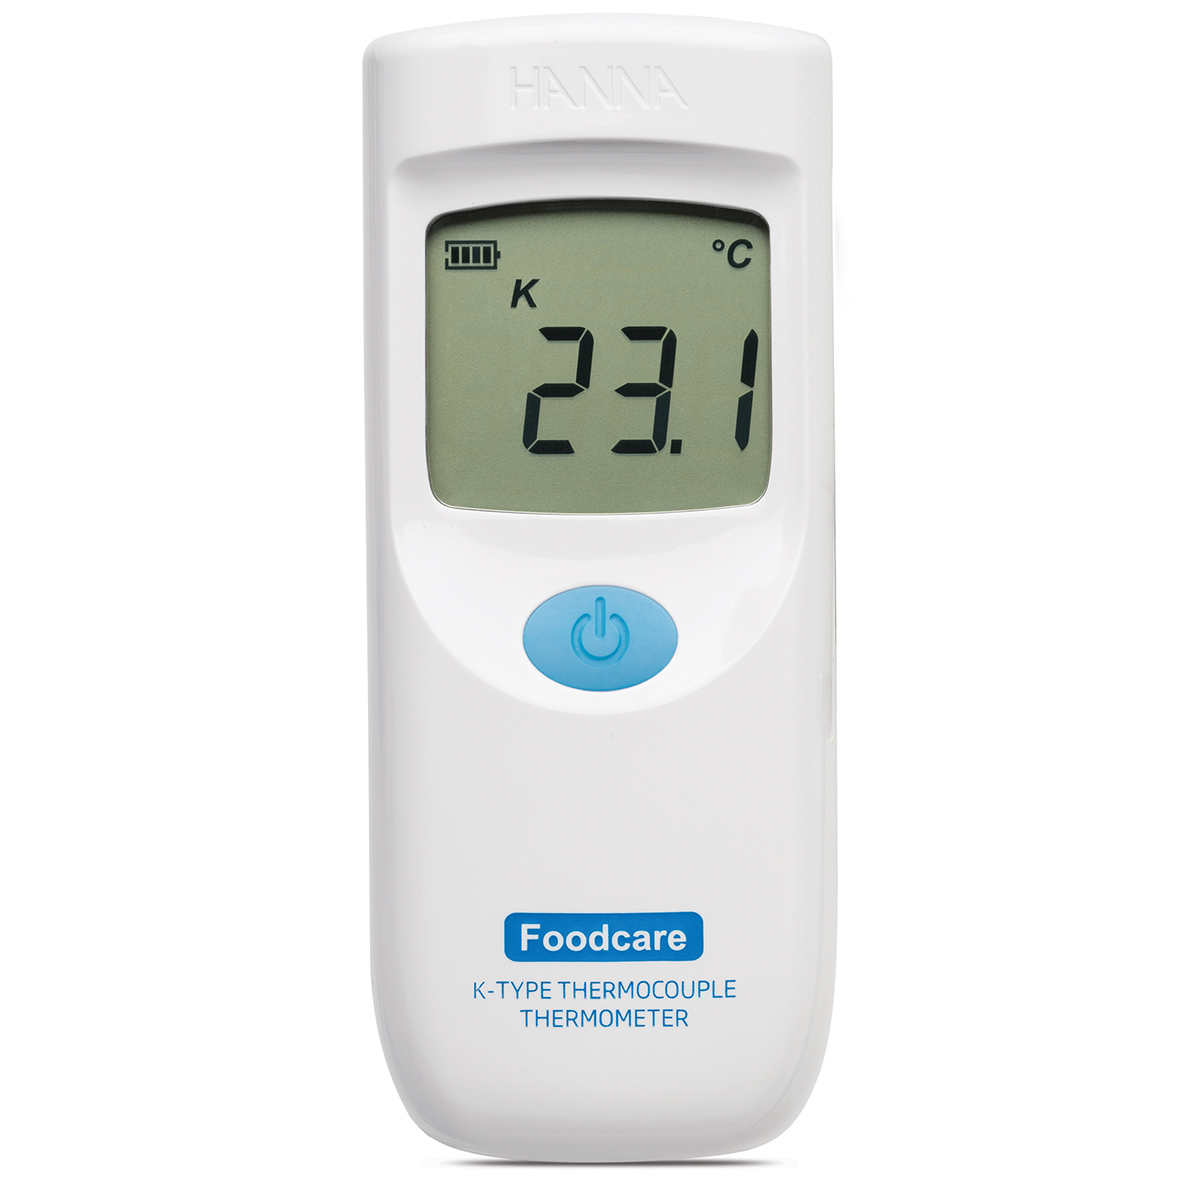 Foodcare K-Type Thermocouple Thermometer with Ultra-Fast Probe - HI9350011